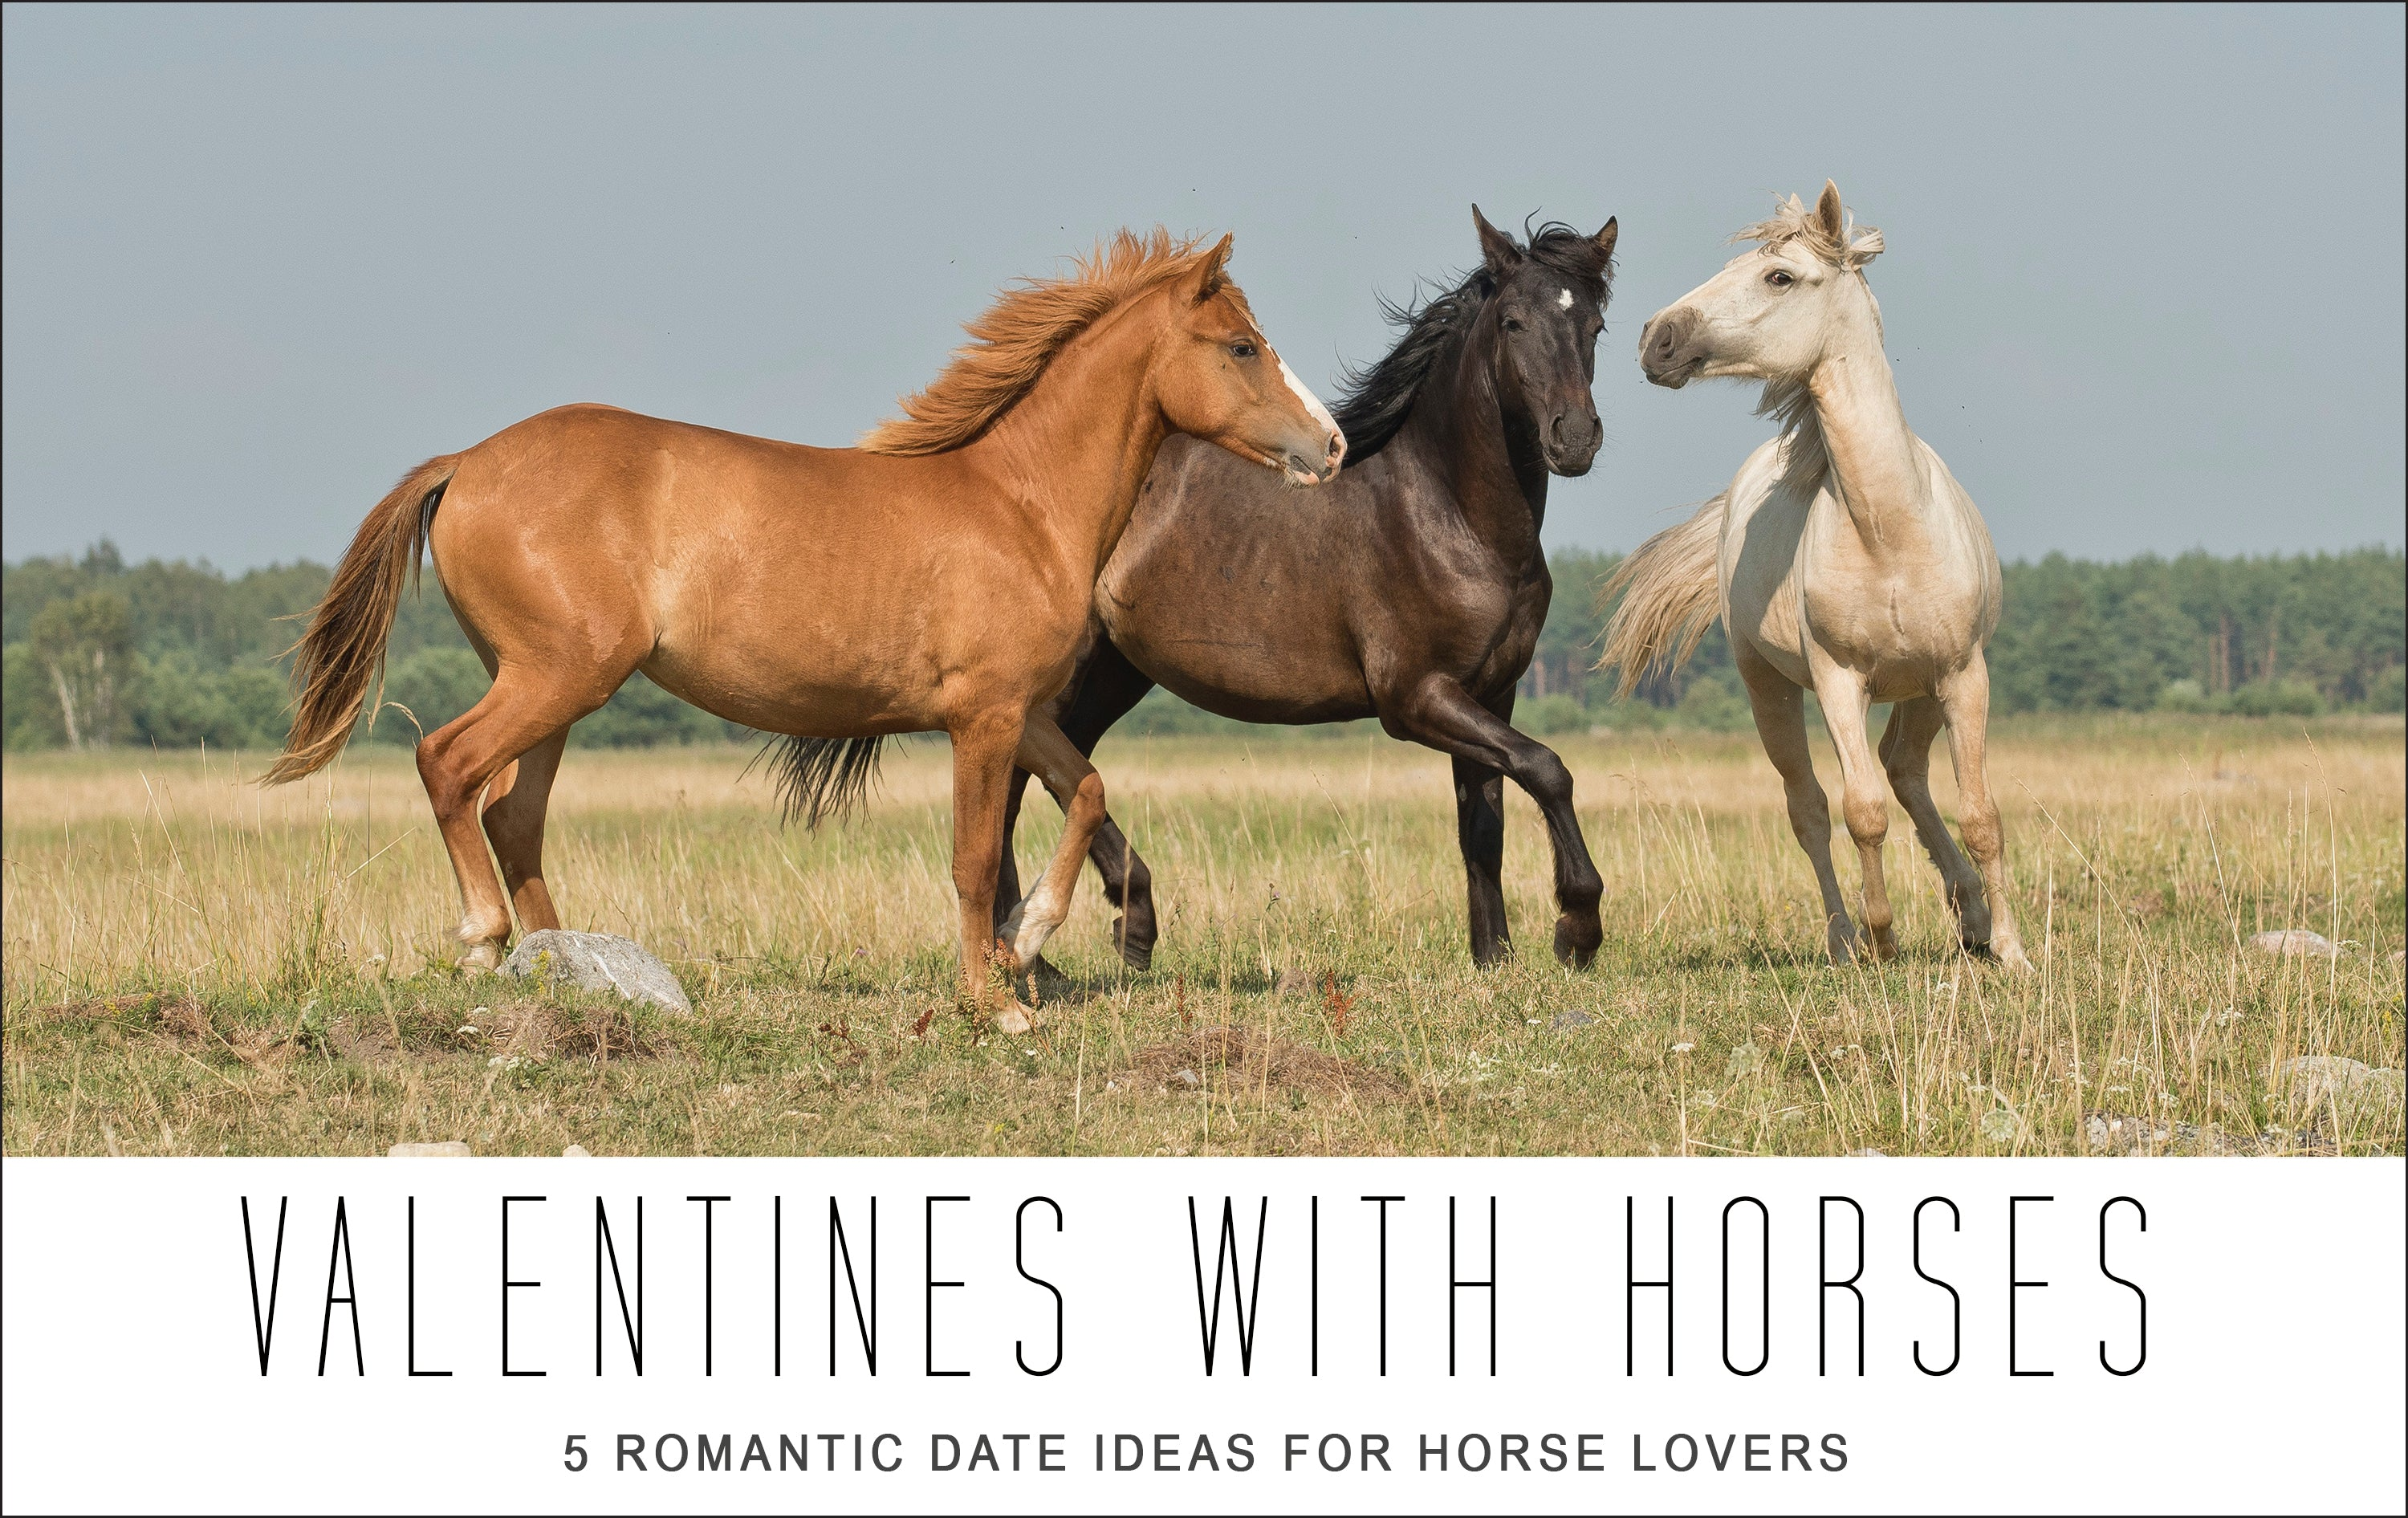 Valentines with Horses: 5 Romantic Date Ideas for Horse Lovers!